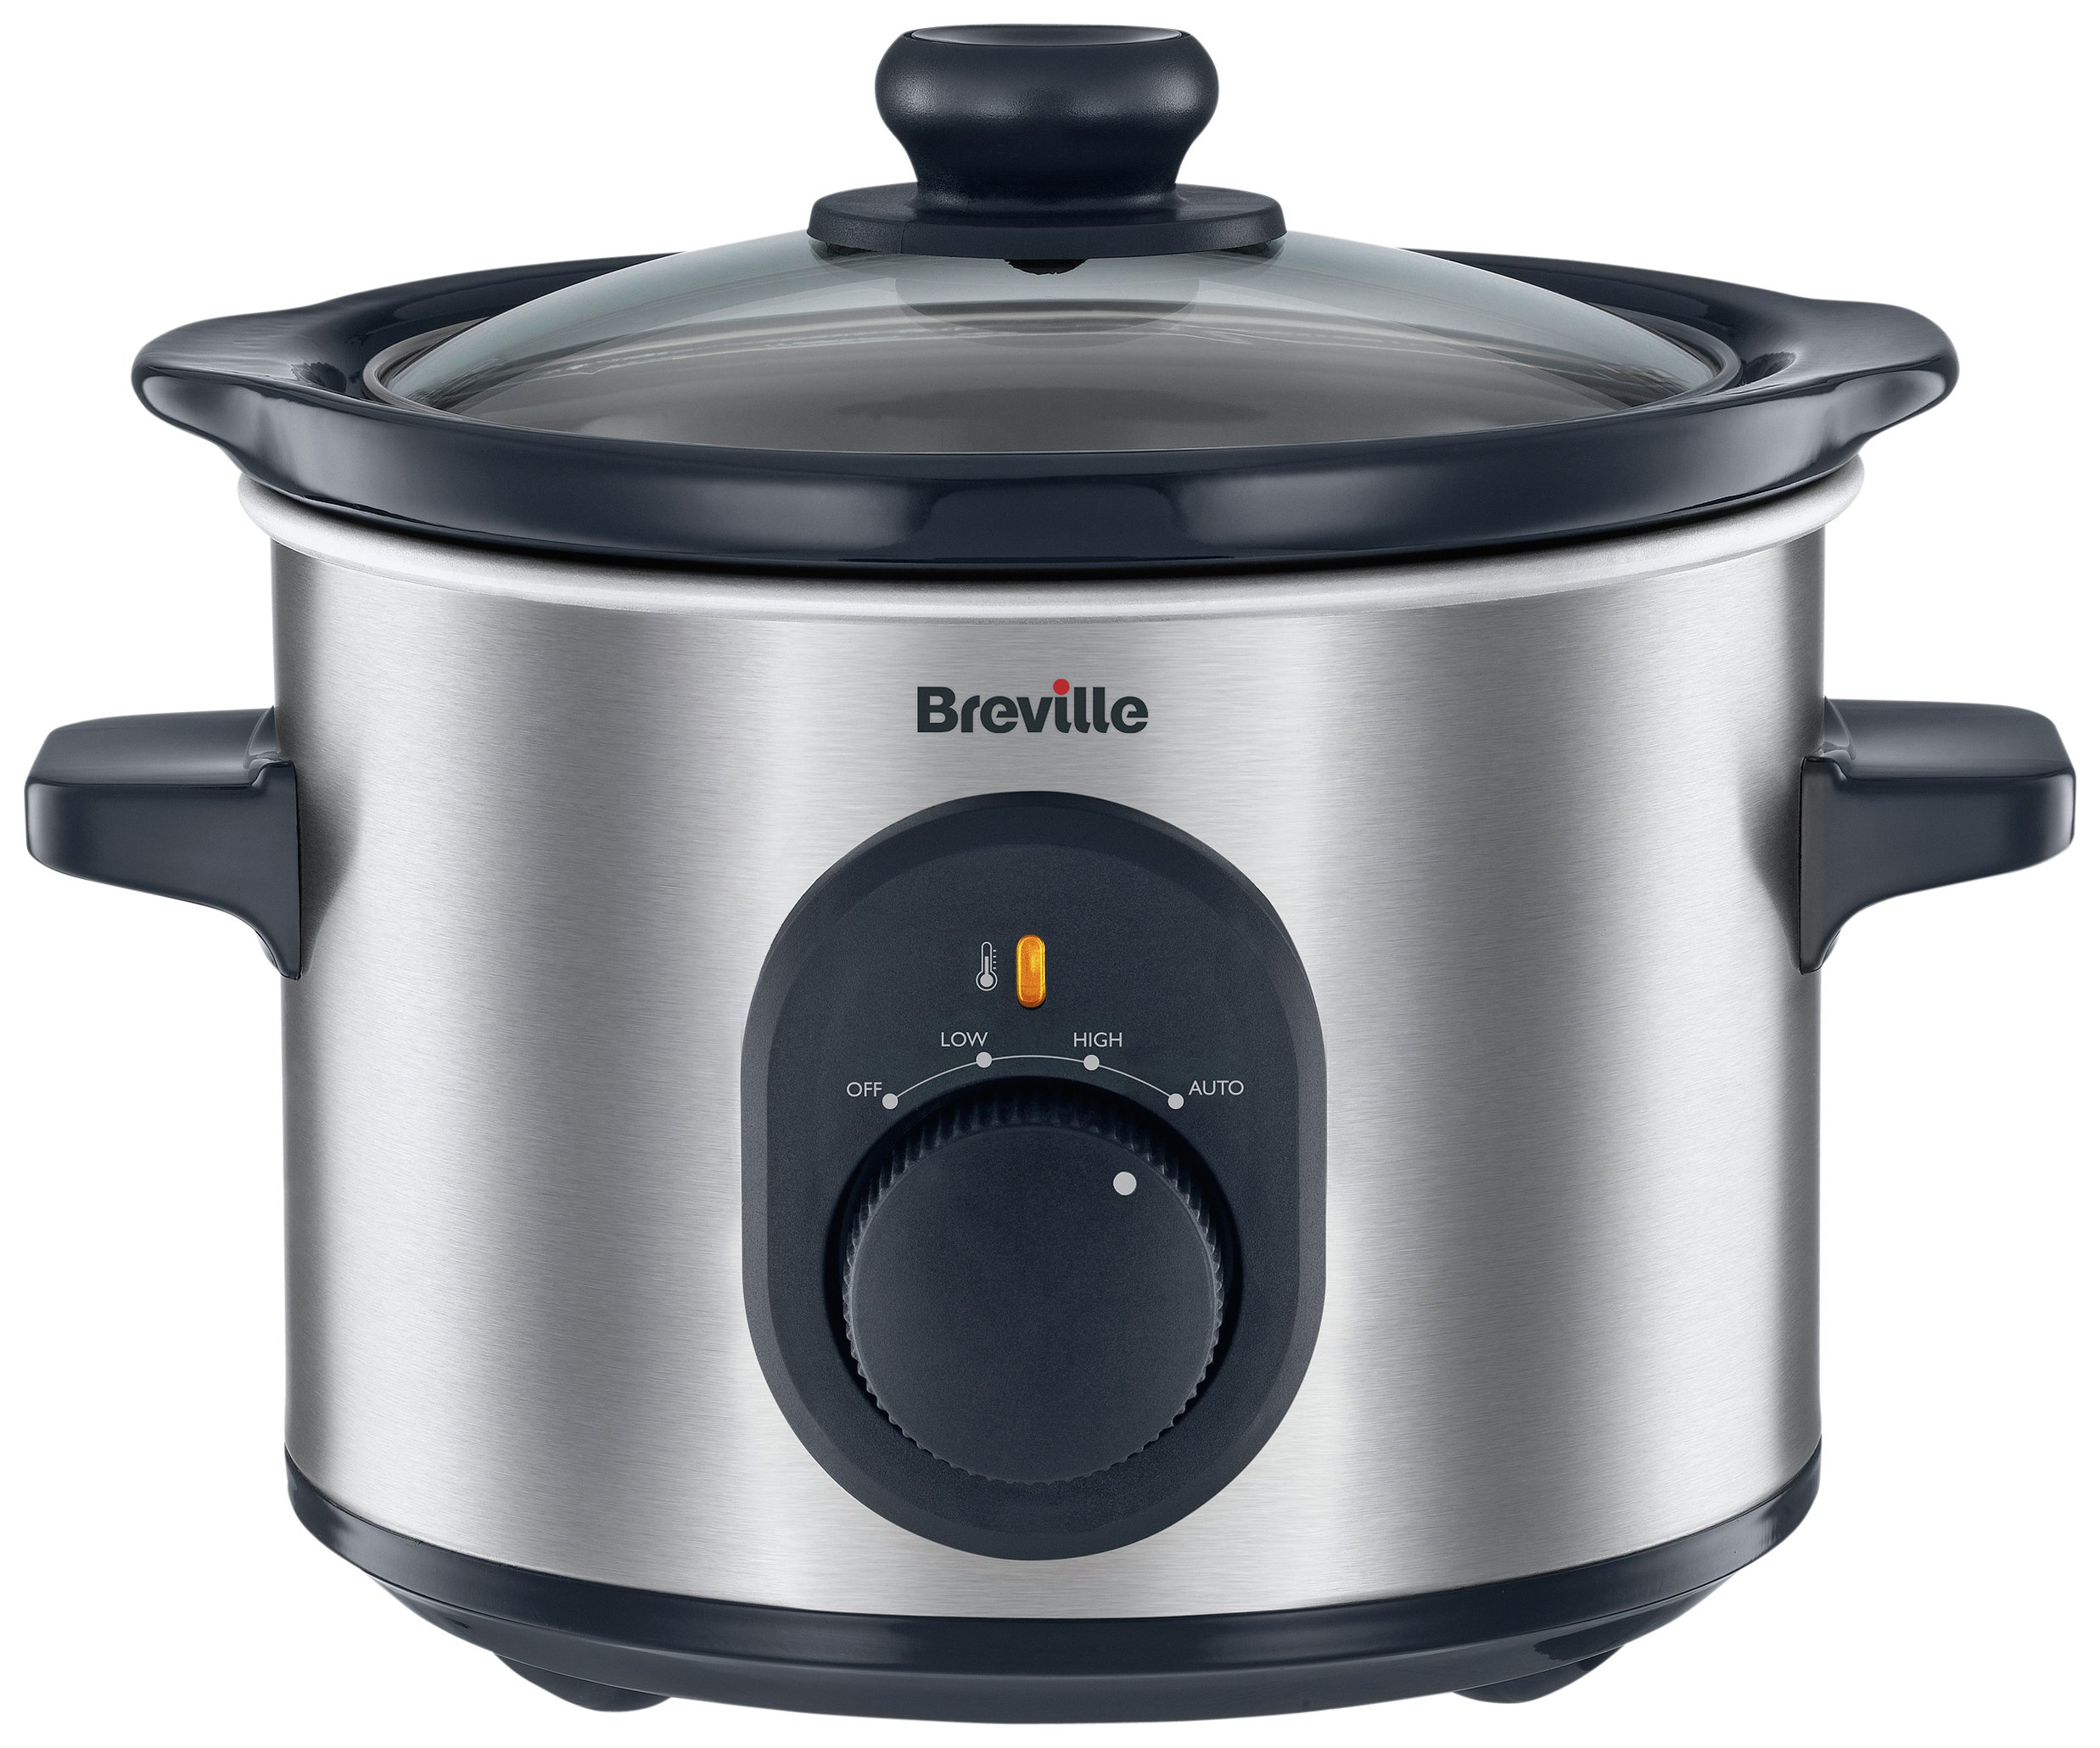 Breville - 15L Compact Slow Cooker - Stainless Steel